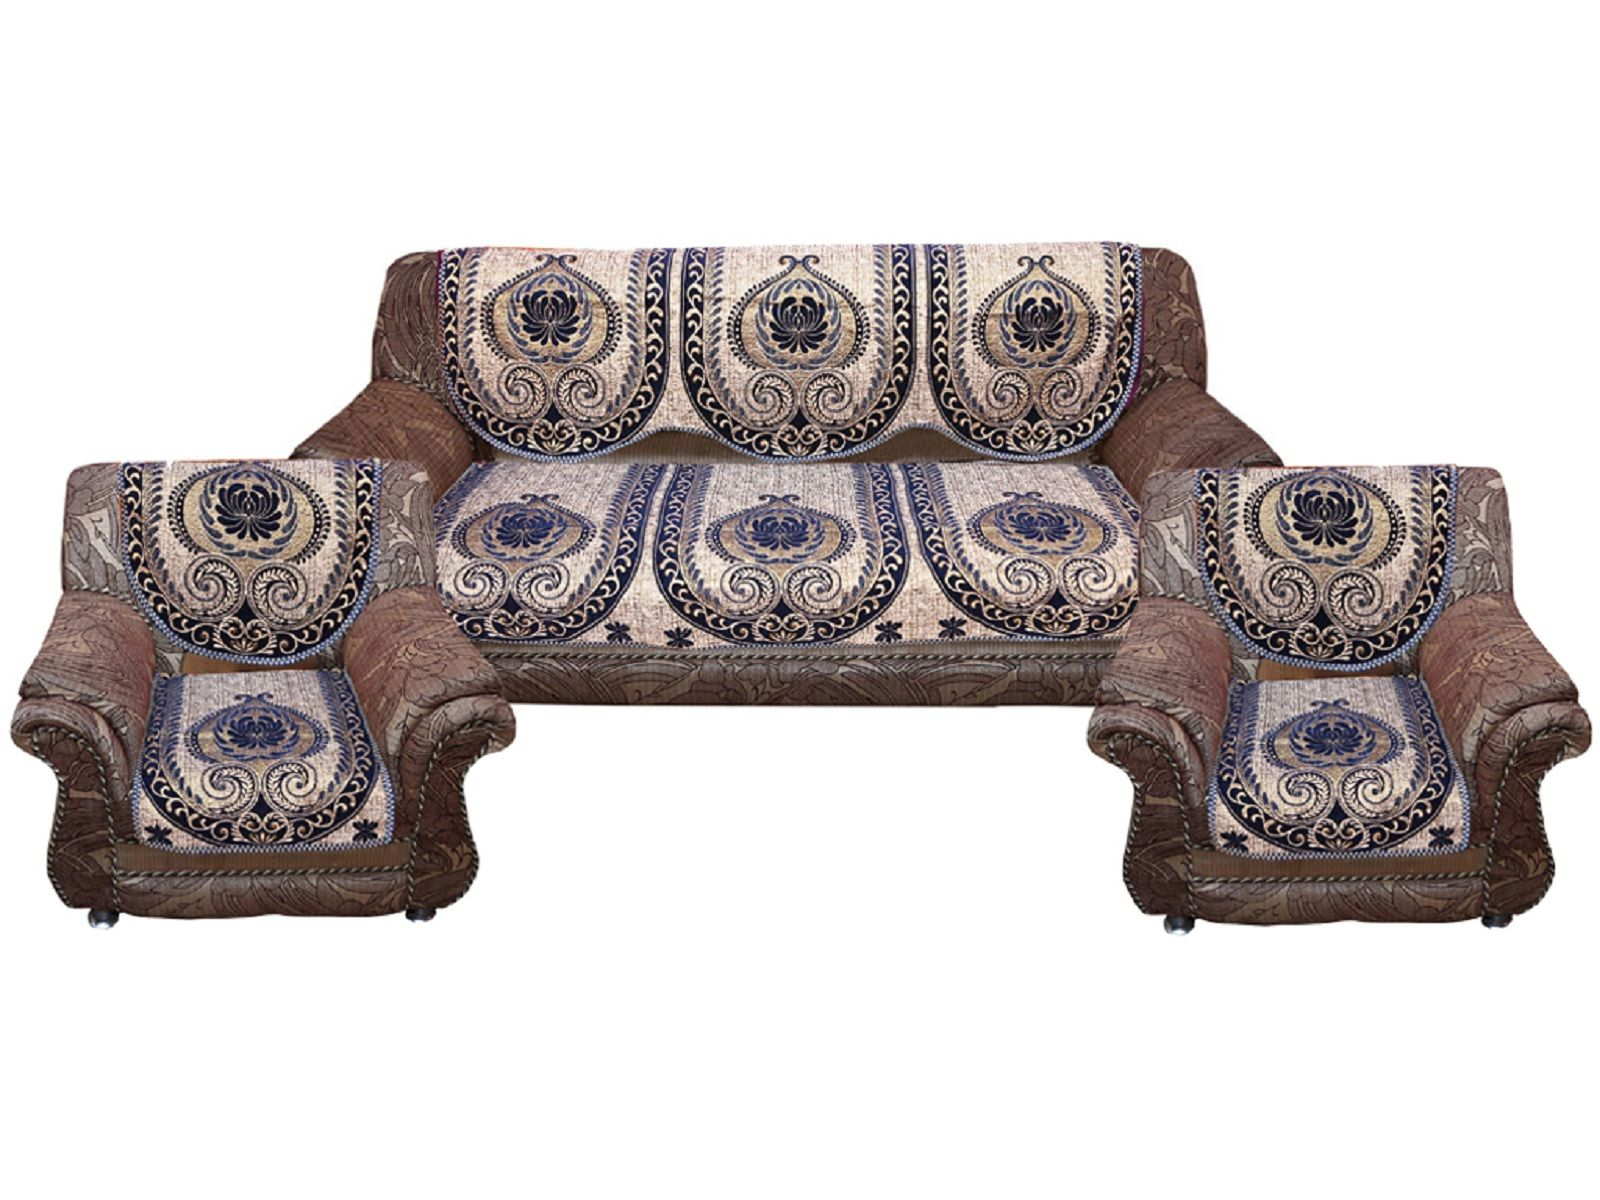 Kuber Industries™ Sofa Cover Heavy Velvet Cloth 5 Seater Set -10 Pieces- Blue & Golden (Exclusive Design) (Code-SFC04)